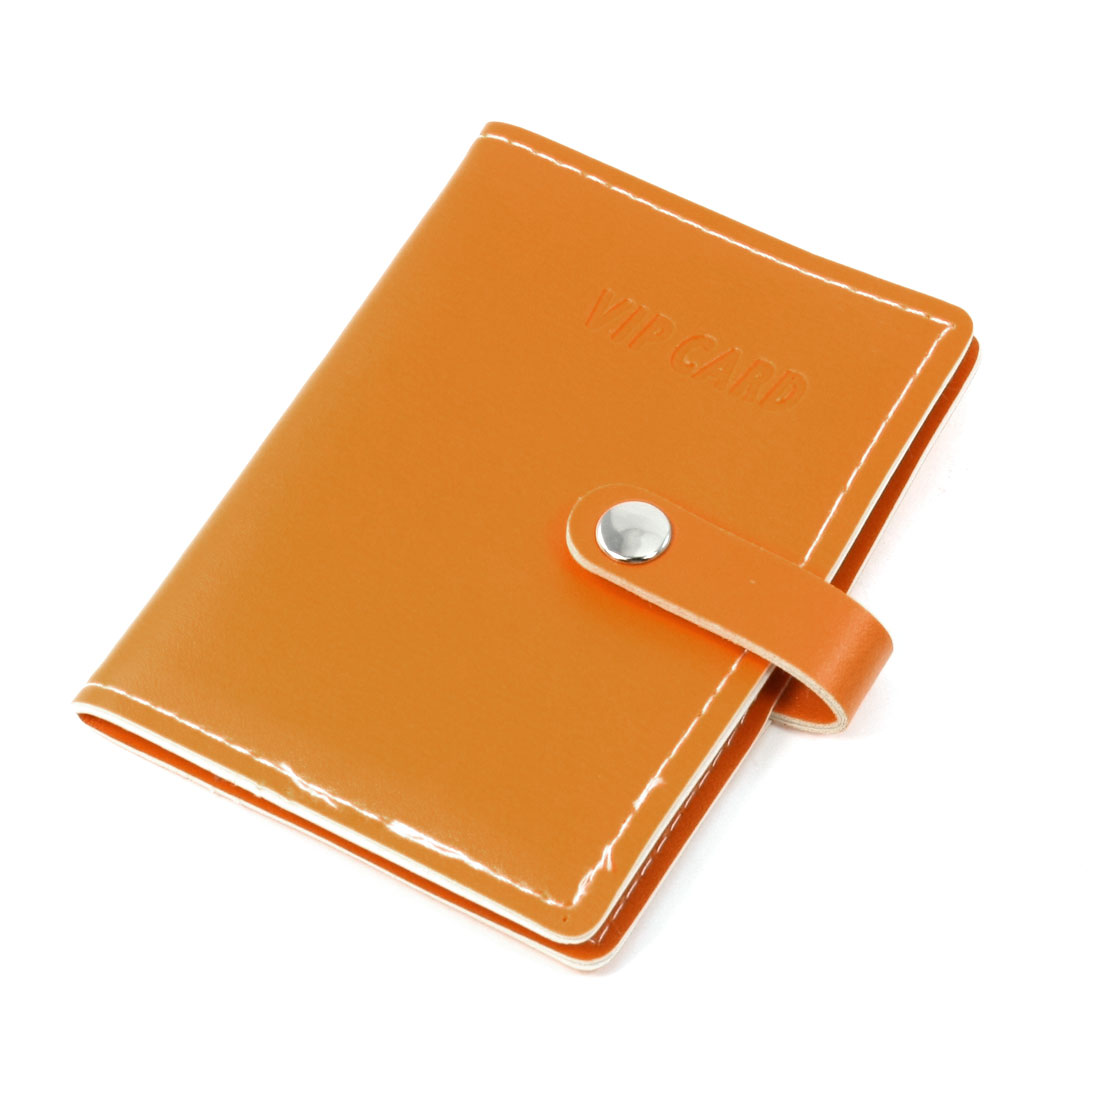 Orange Faux Leather Snap Button Closure Credit Card Holder